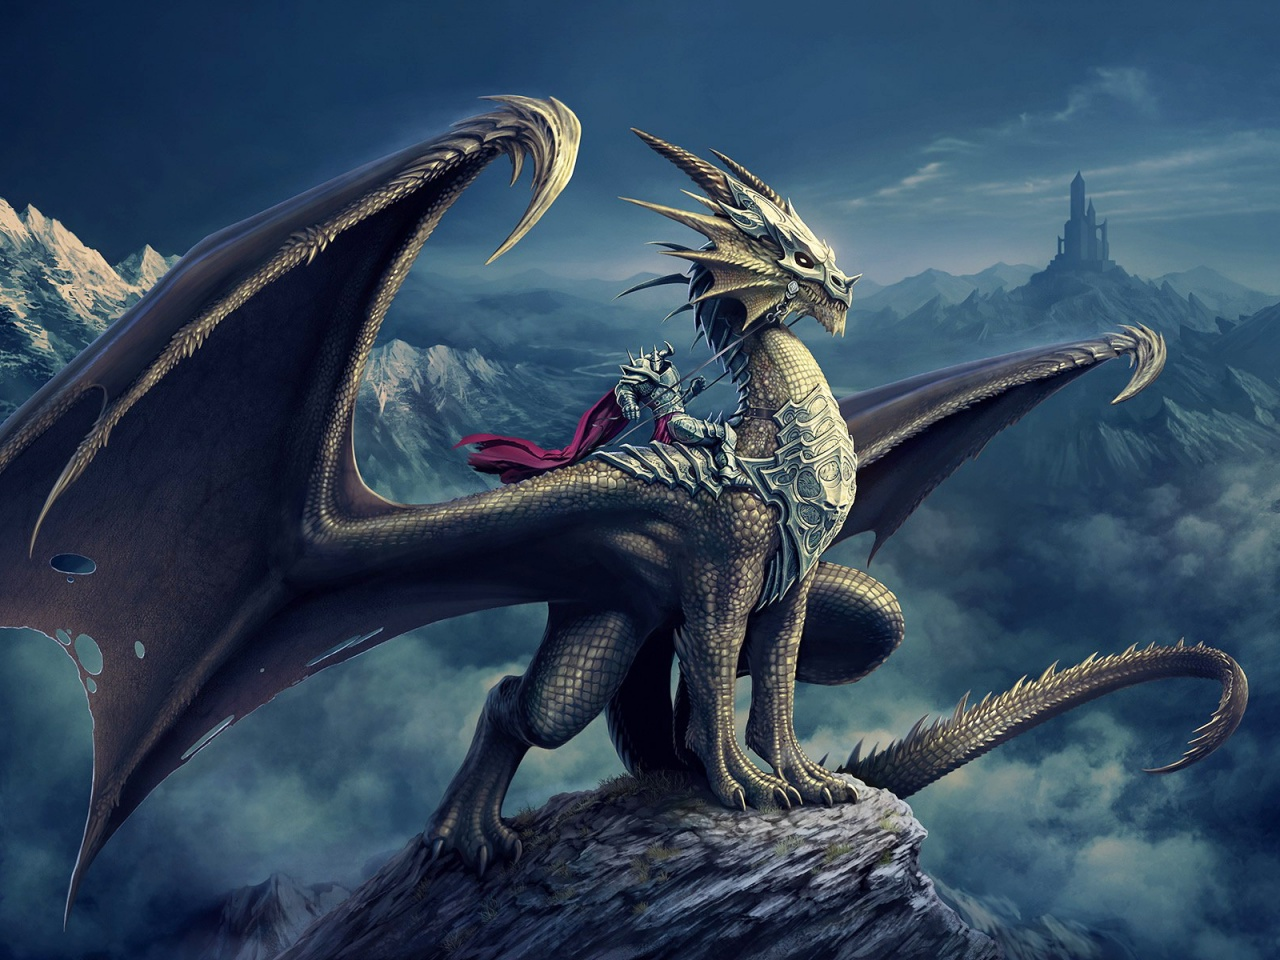 Description: The Wallpaper above is Dragon rider 1 Wallpaper in Resolution 1280x960. Choose your Resolution and Download Dragon rider 1 Wallpaper